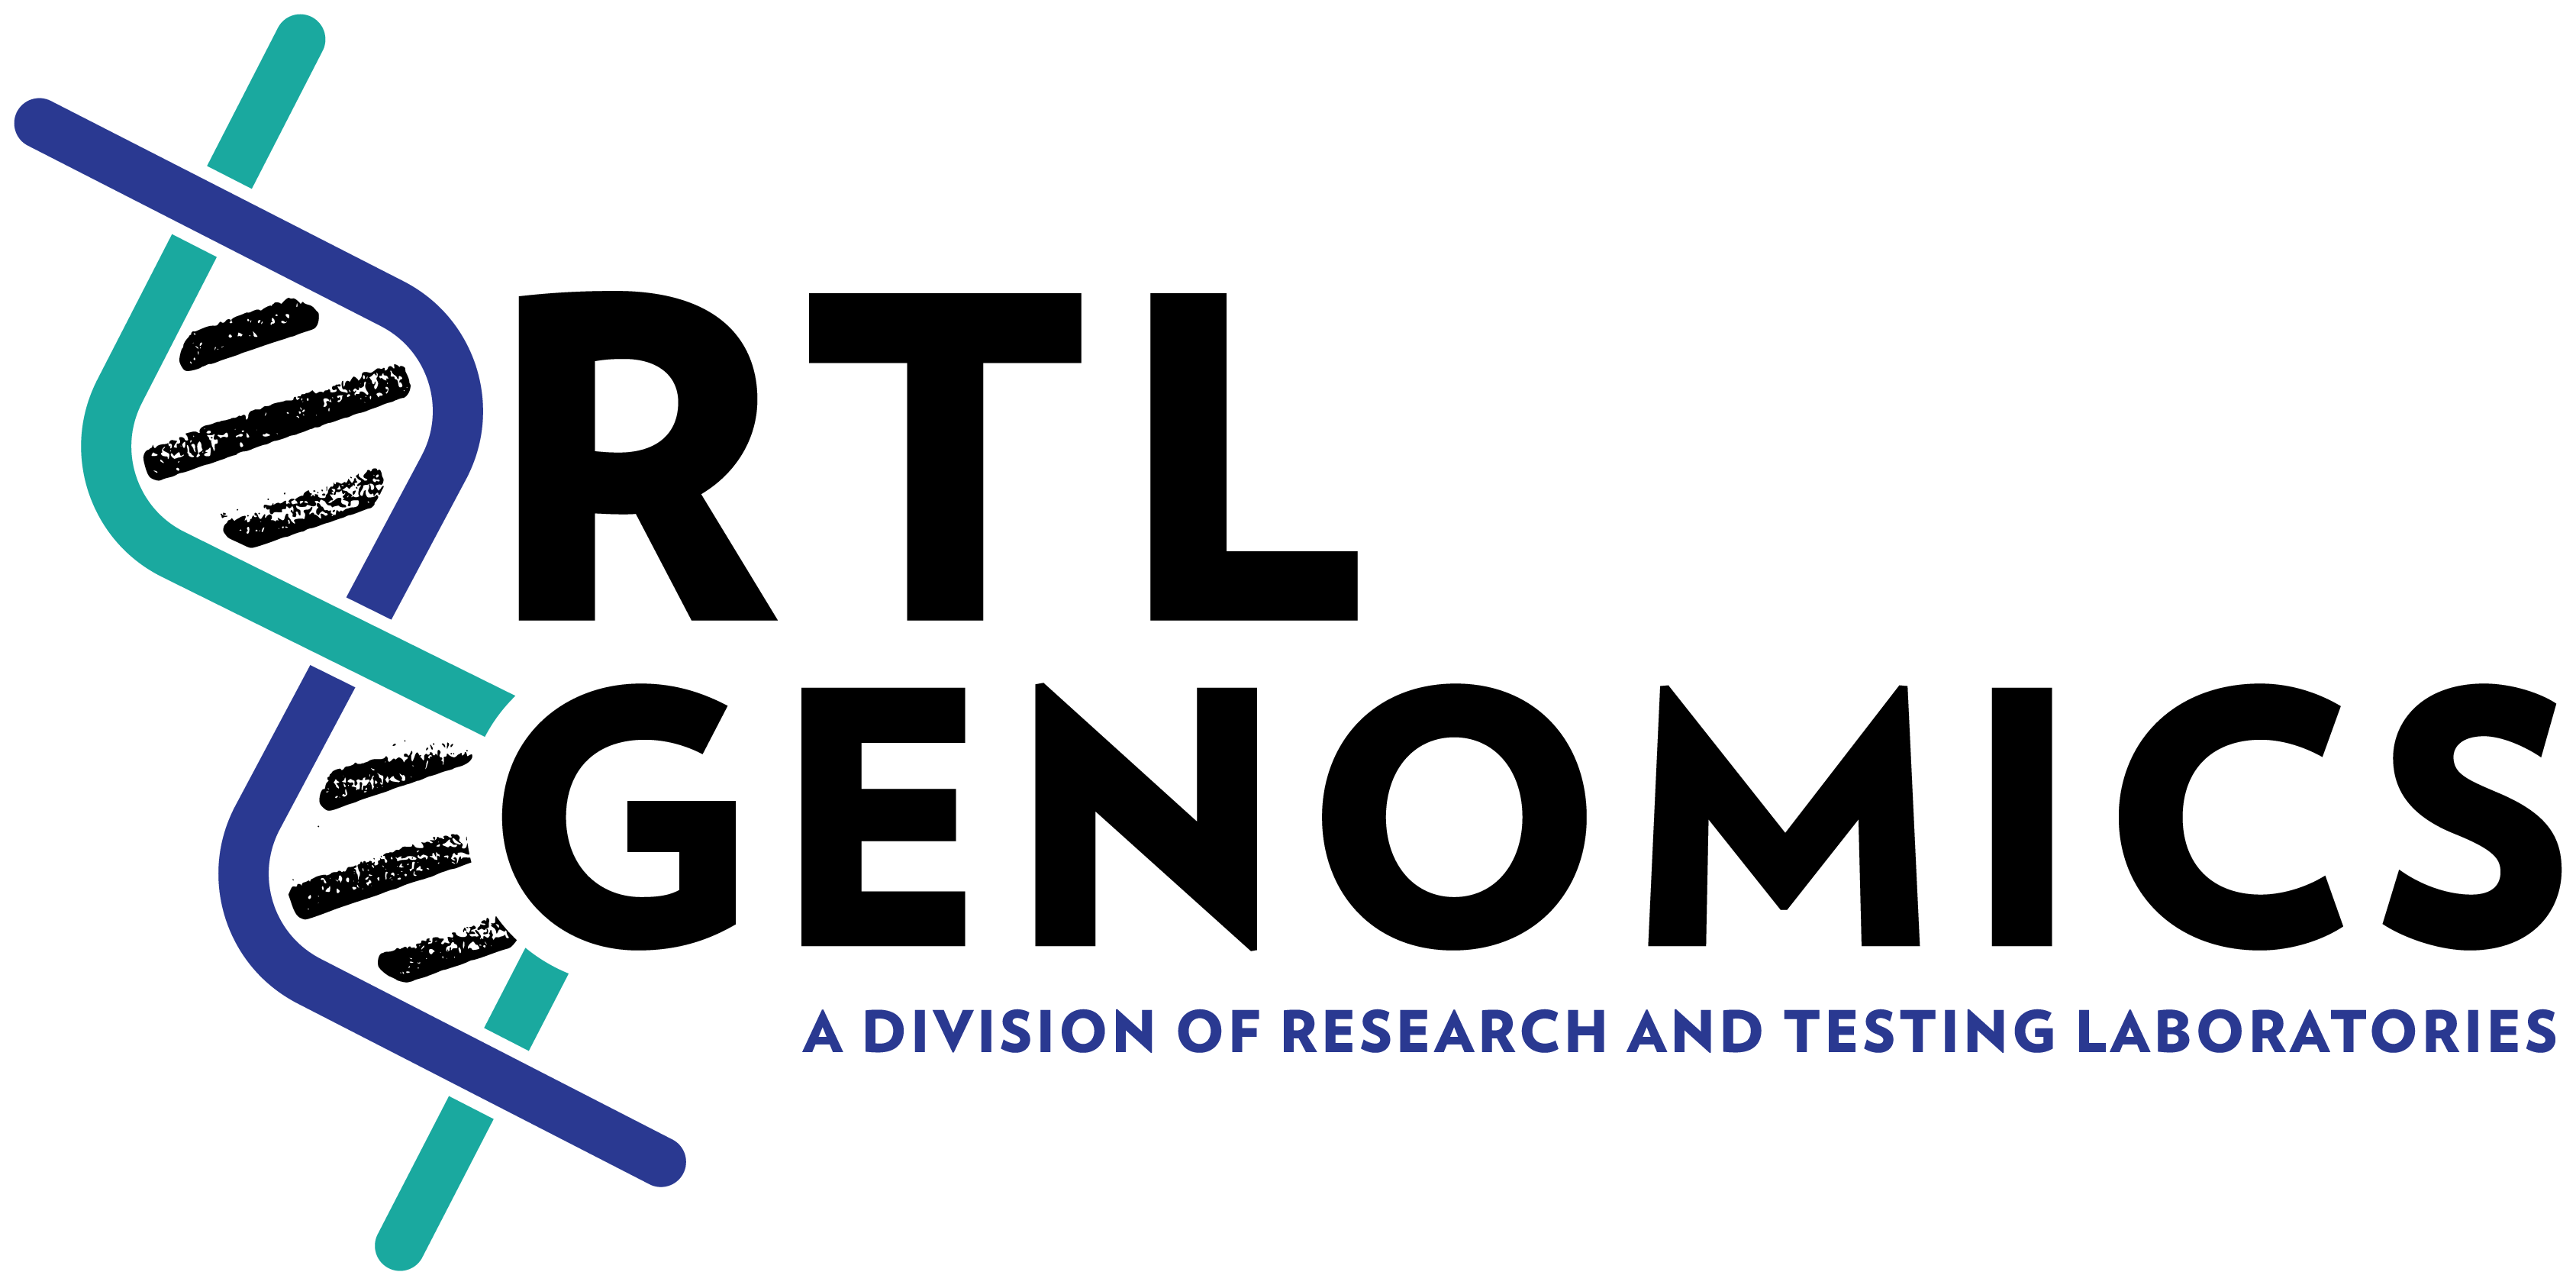 RTLGenomics Lab / Facility Logo